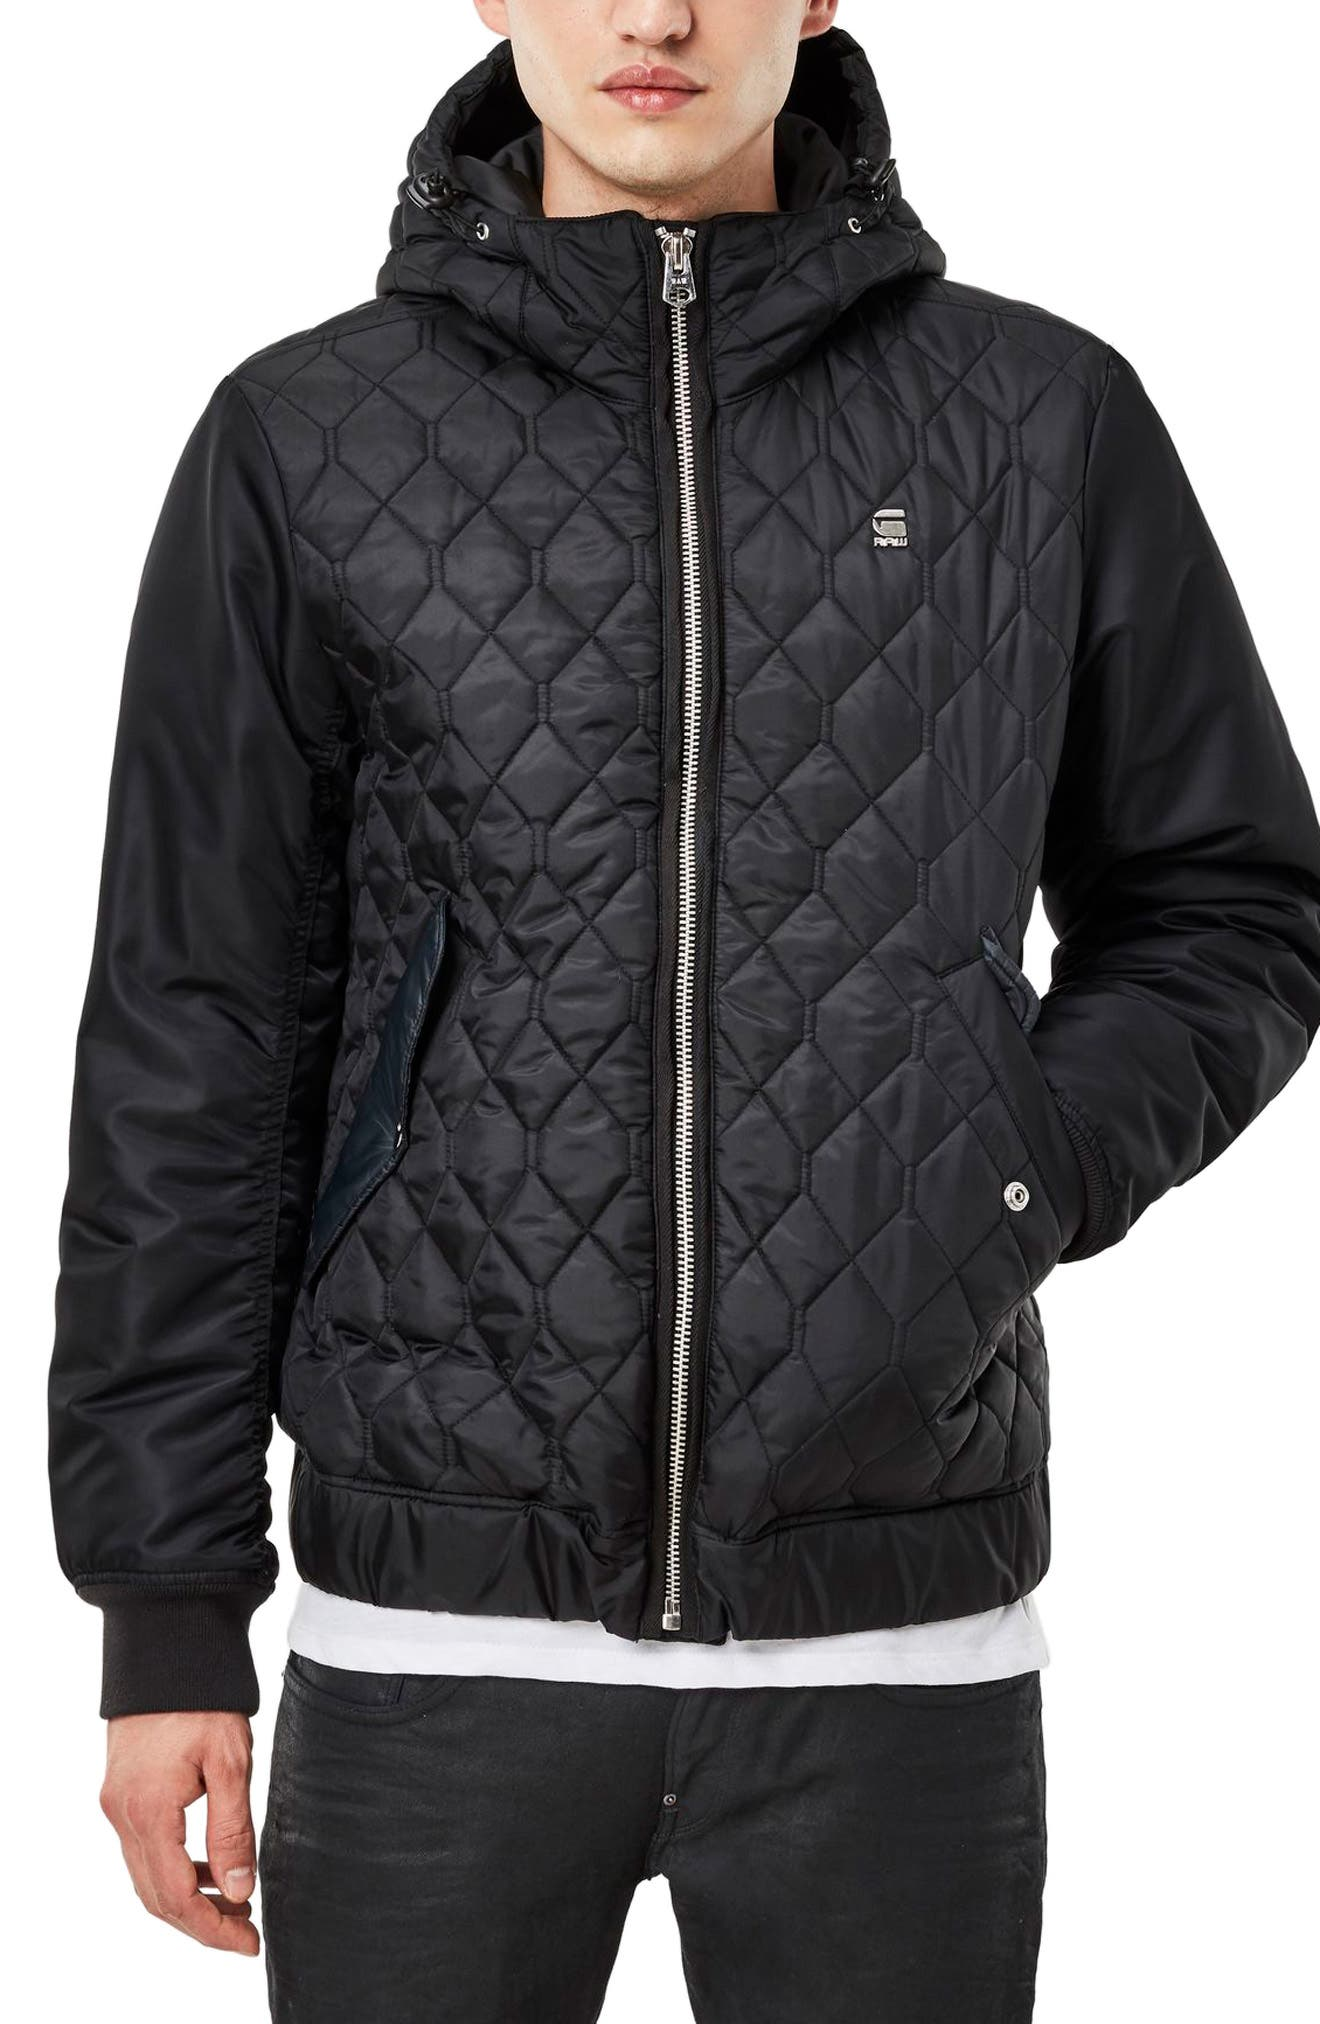 Meefic Hybrid Quilted Jacket,                             Main thumbnail 1, color,                             001